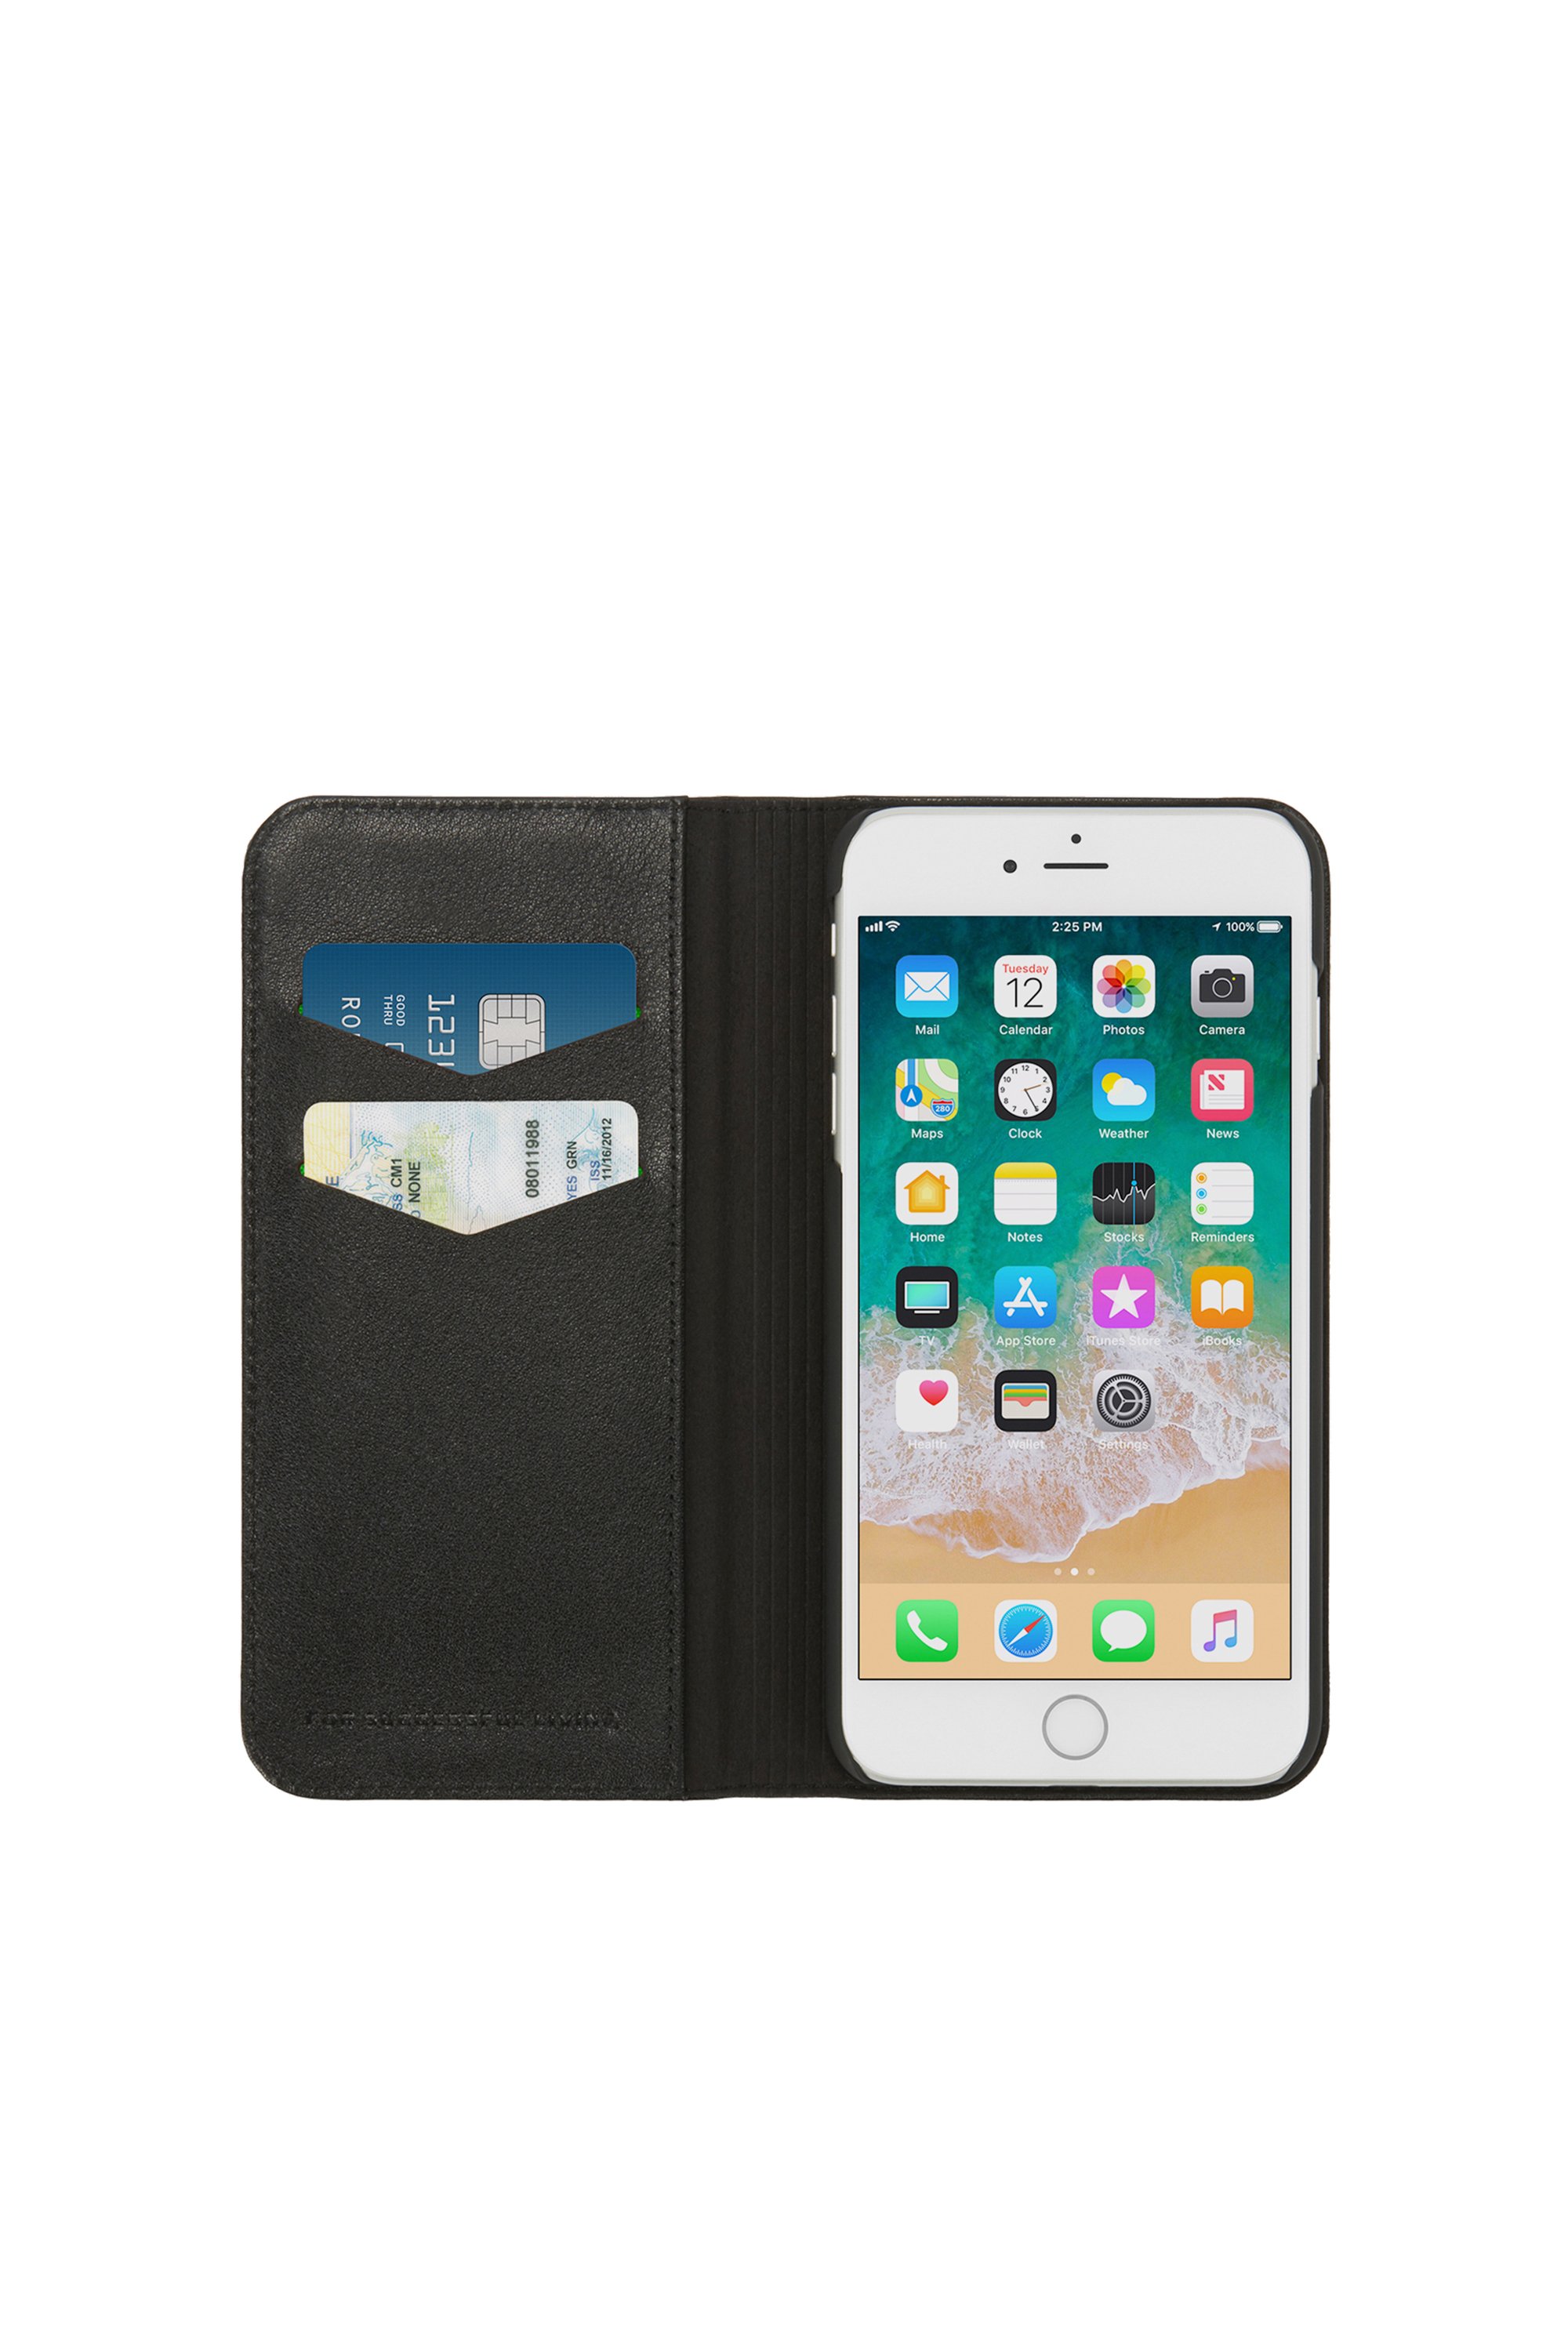 Diesel - SLIM LEATHER FOLIO IPHONE 8/7,  - Flip covers - Image 6